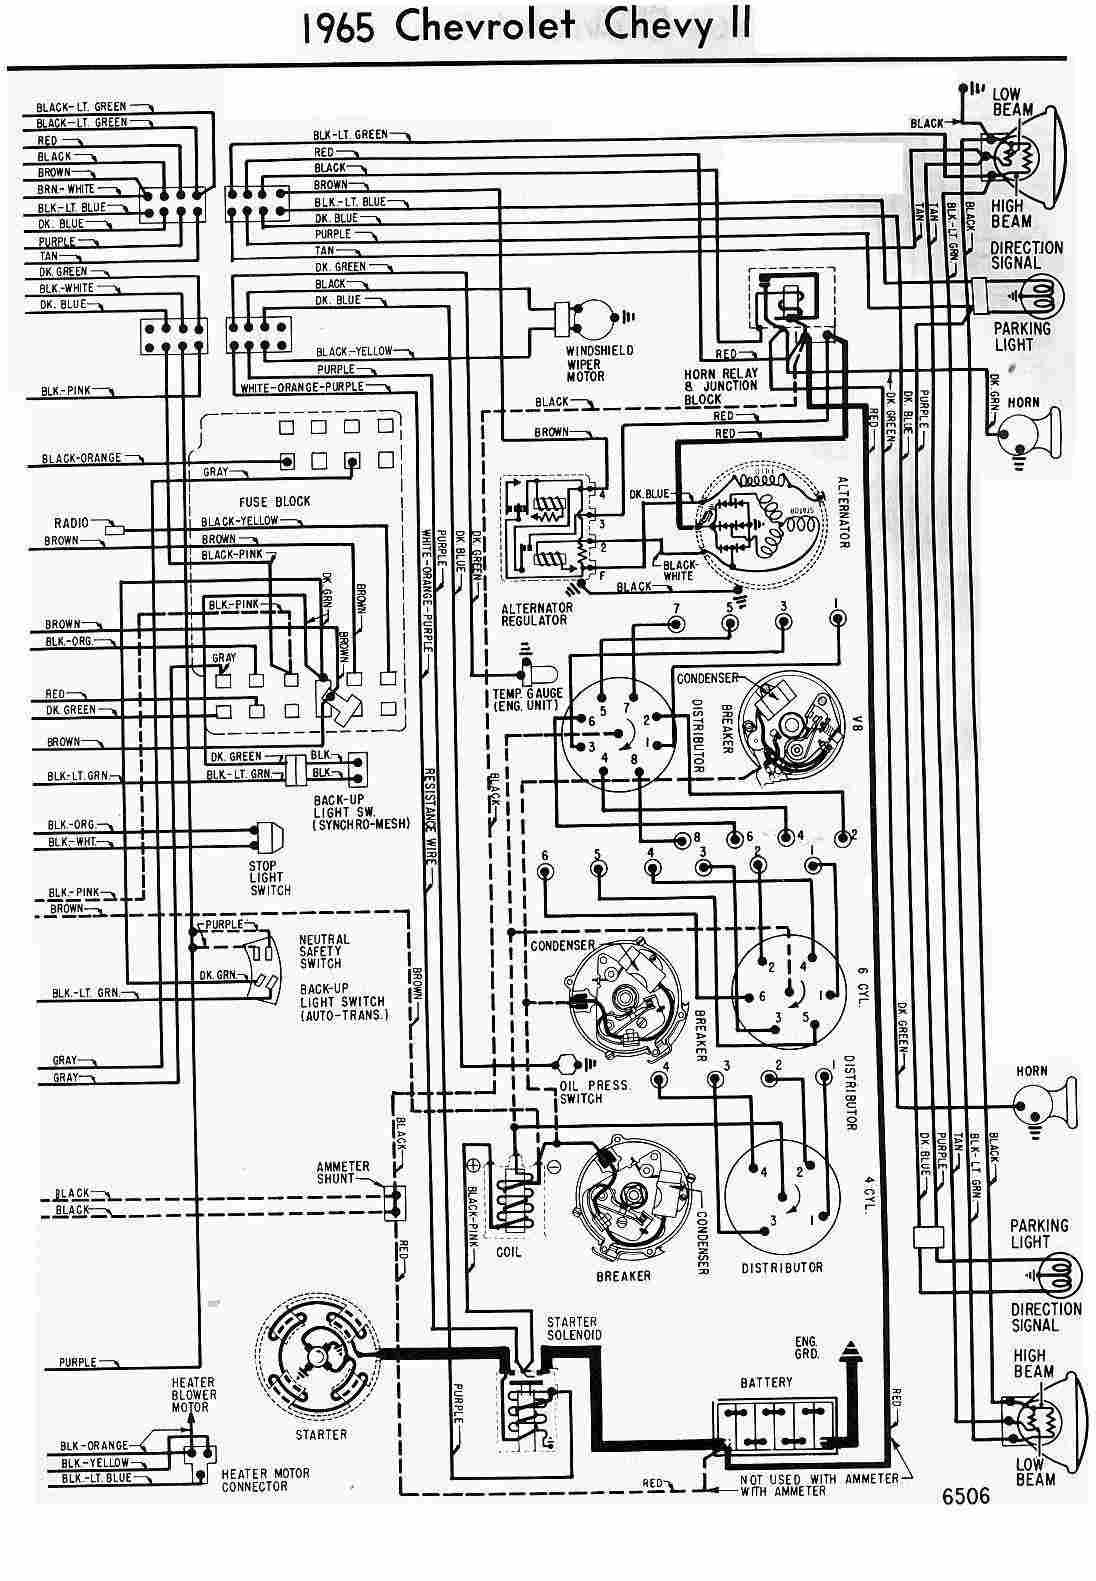 69 camaro wiring schematic for regulator chevy 350 wiring diagram on download 1969 camaro dash wiring  wiring diagram on download 1969 camaro